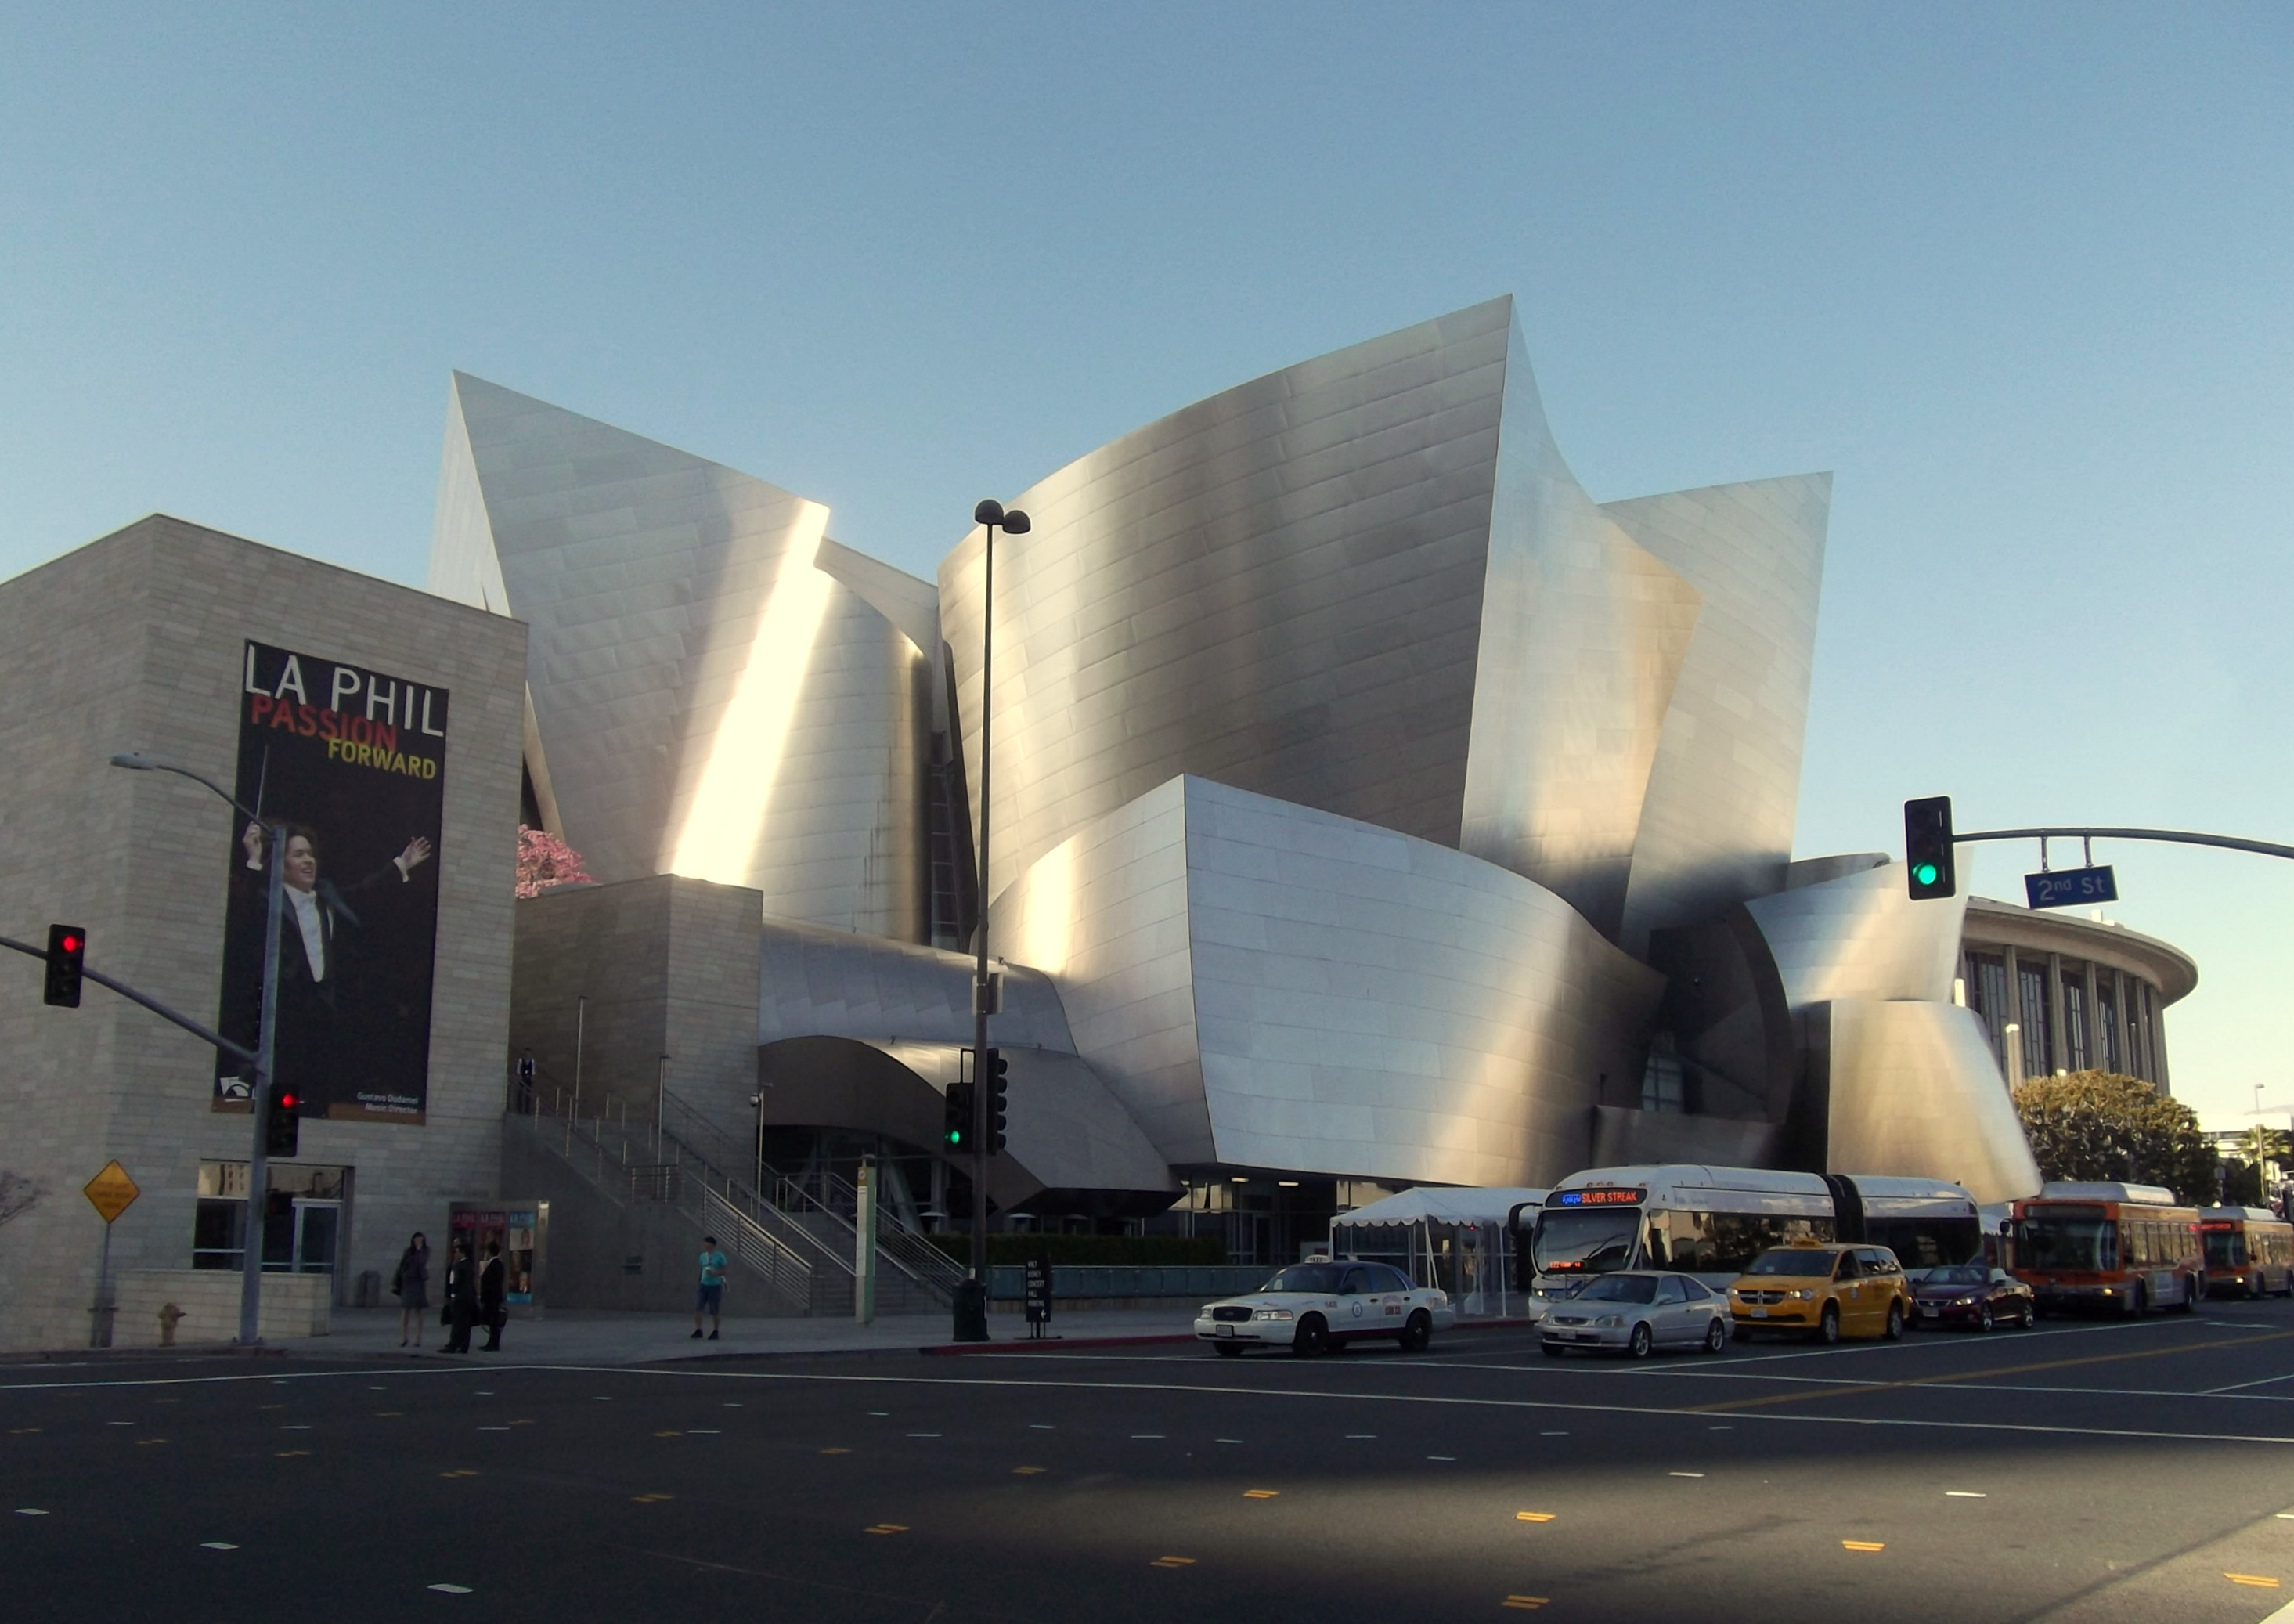 walt disney concert hall View walt disney concert hall's upcoming event schedule and profile - los angeles, ca the walt disney concert hall is far from your typical concert hall.